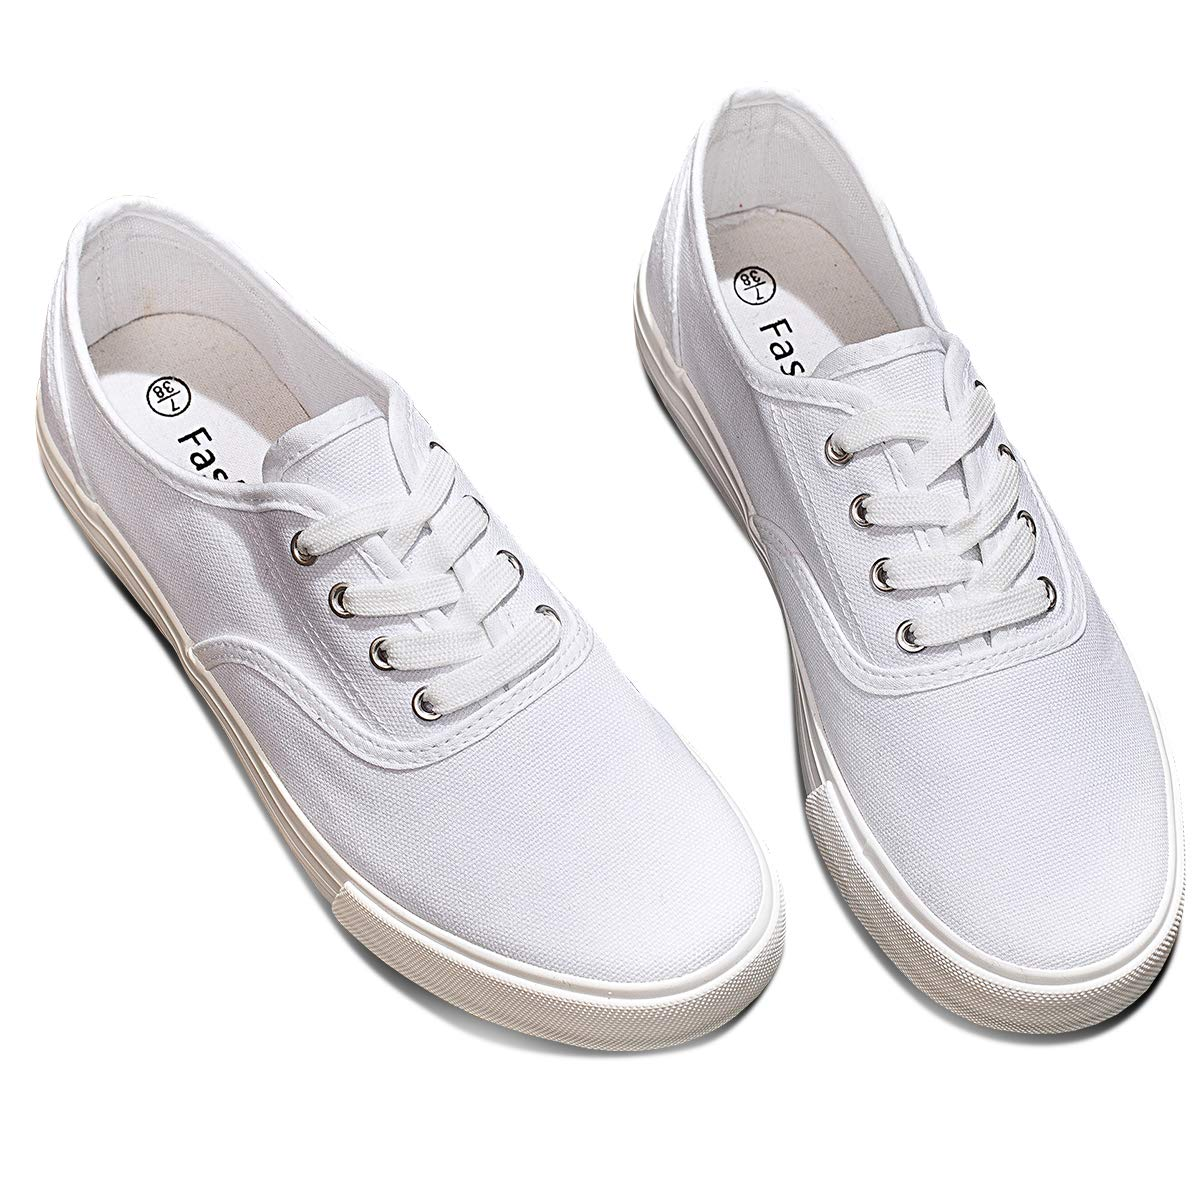 ZGR Women's Canvas Shoes Fashion Low Cut Loafer Sneakers (us8, White)